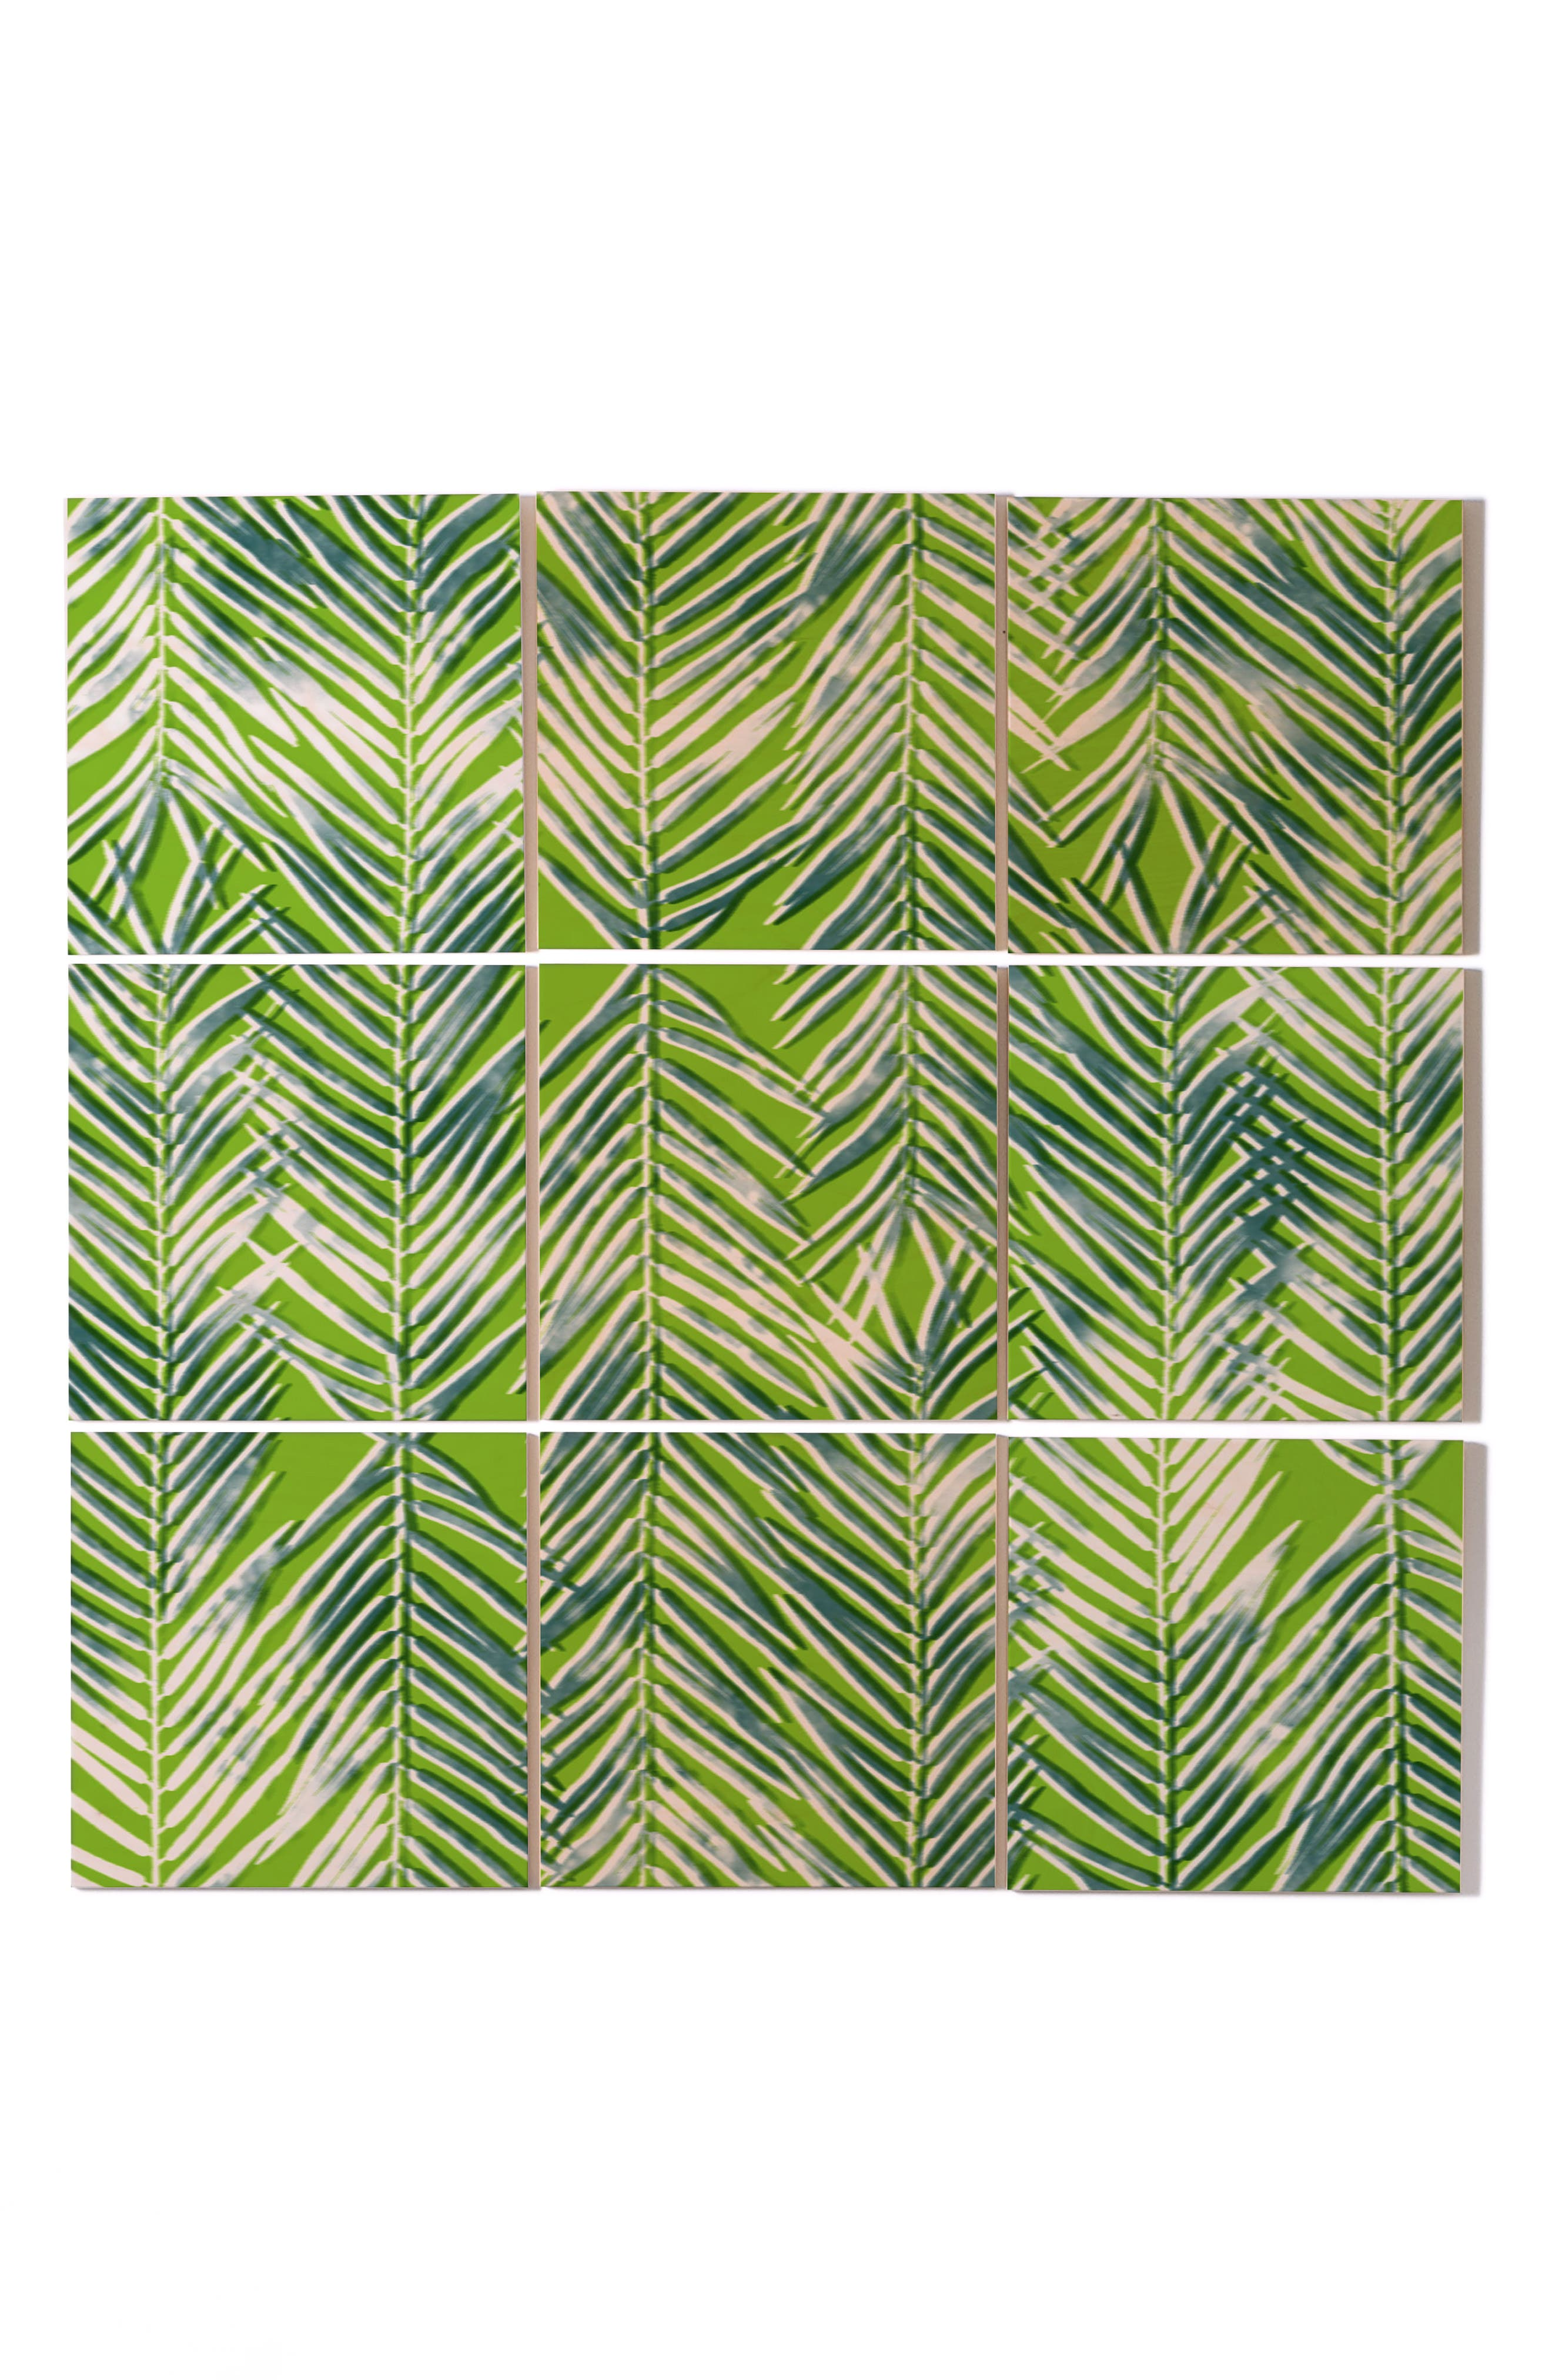 Poolside Lounge 9-Piece Wood Wall Mural,                         Main,                         color, Green